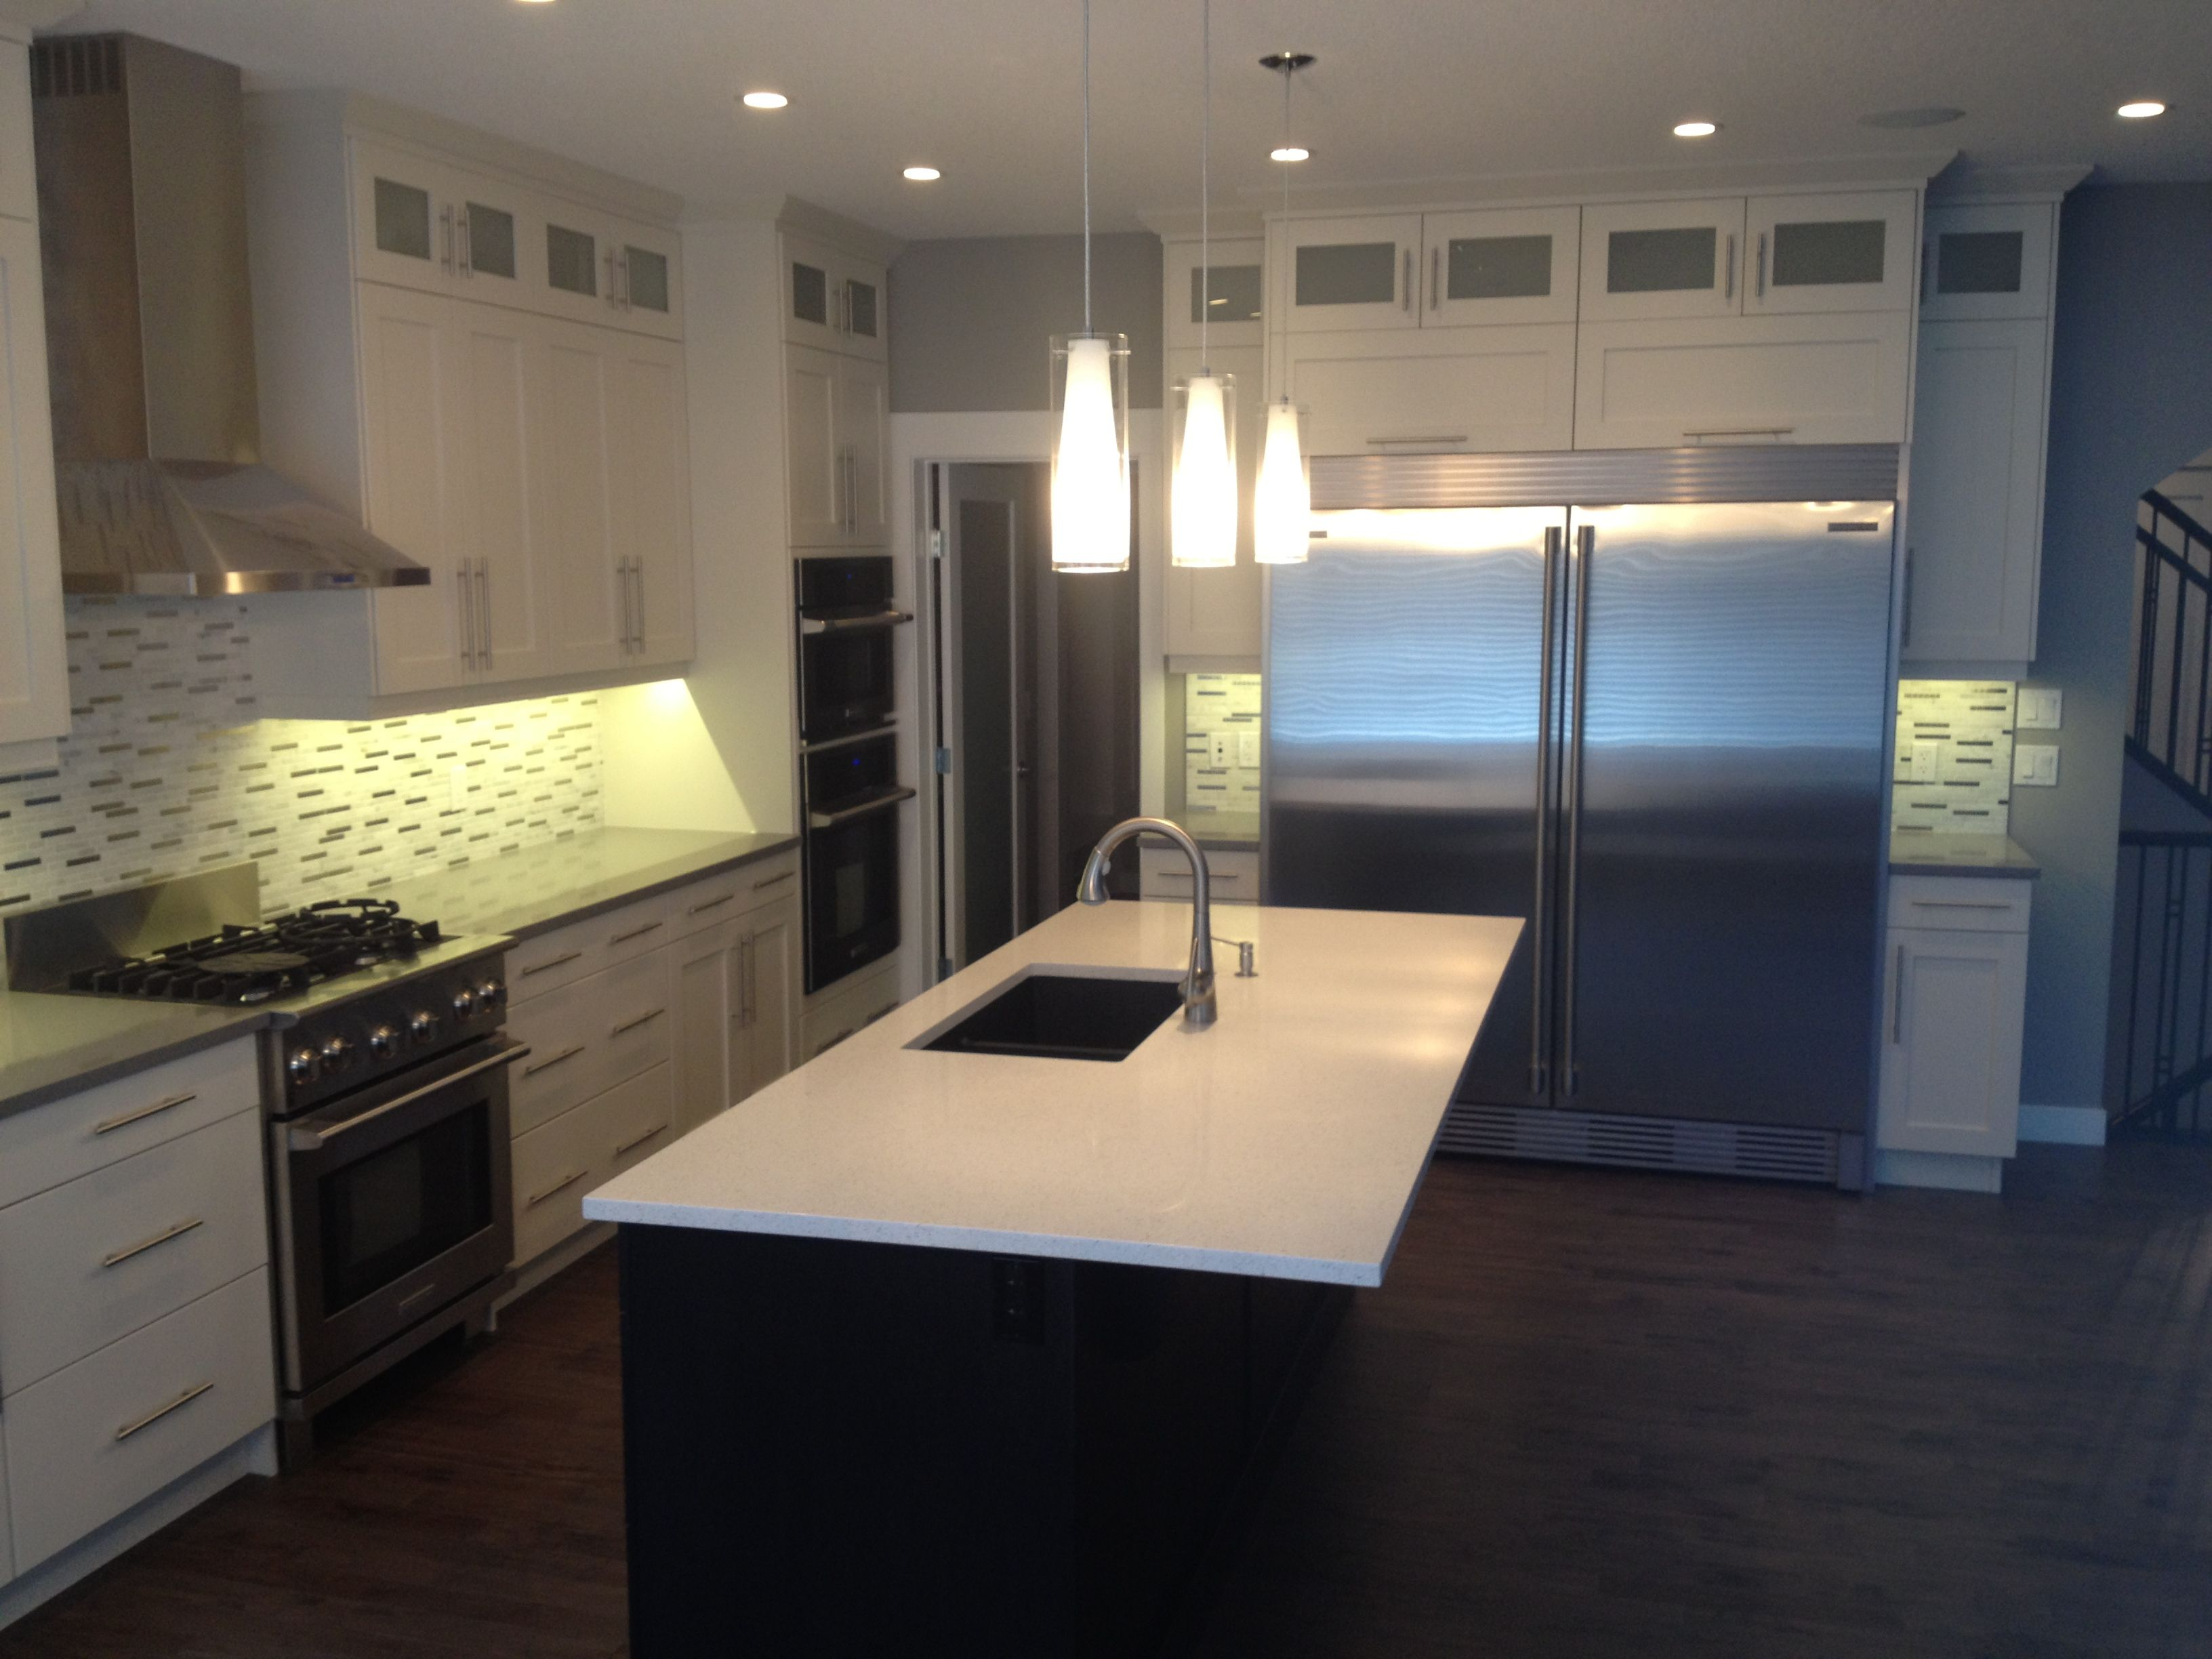 Westridge Cabinets In Arctic White 65 Sheen/Maple, Shaker Style Uppers (to  Ceiling